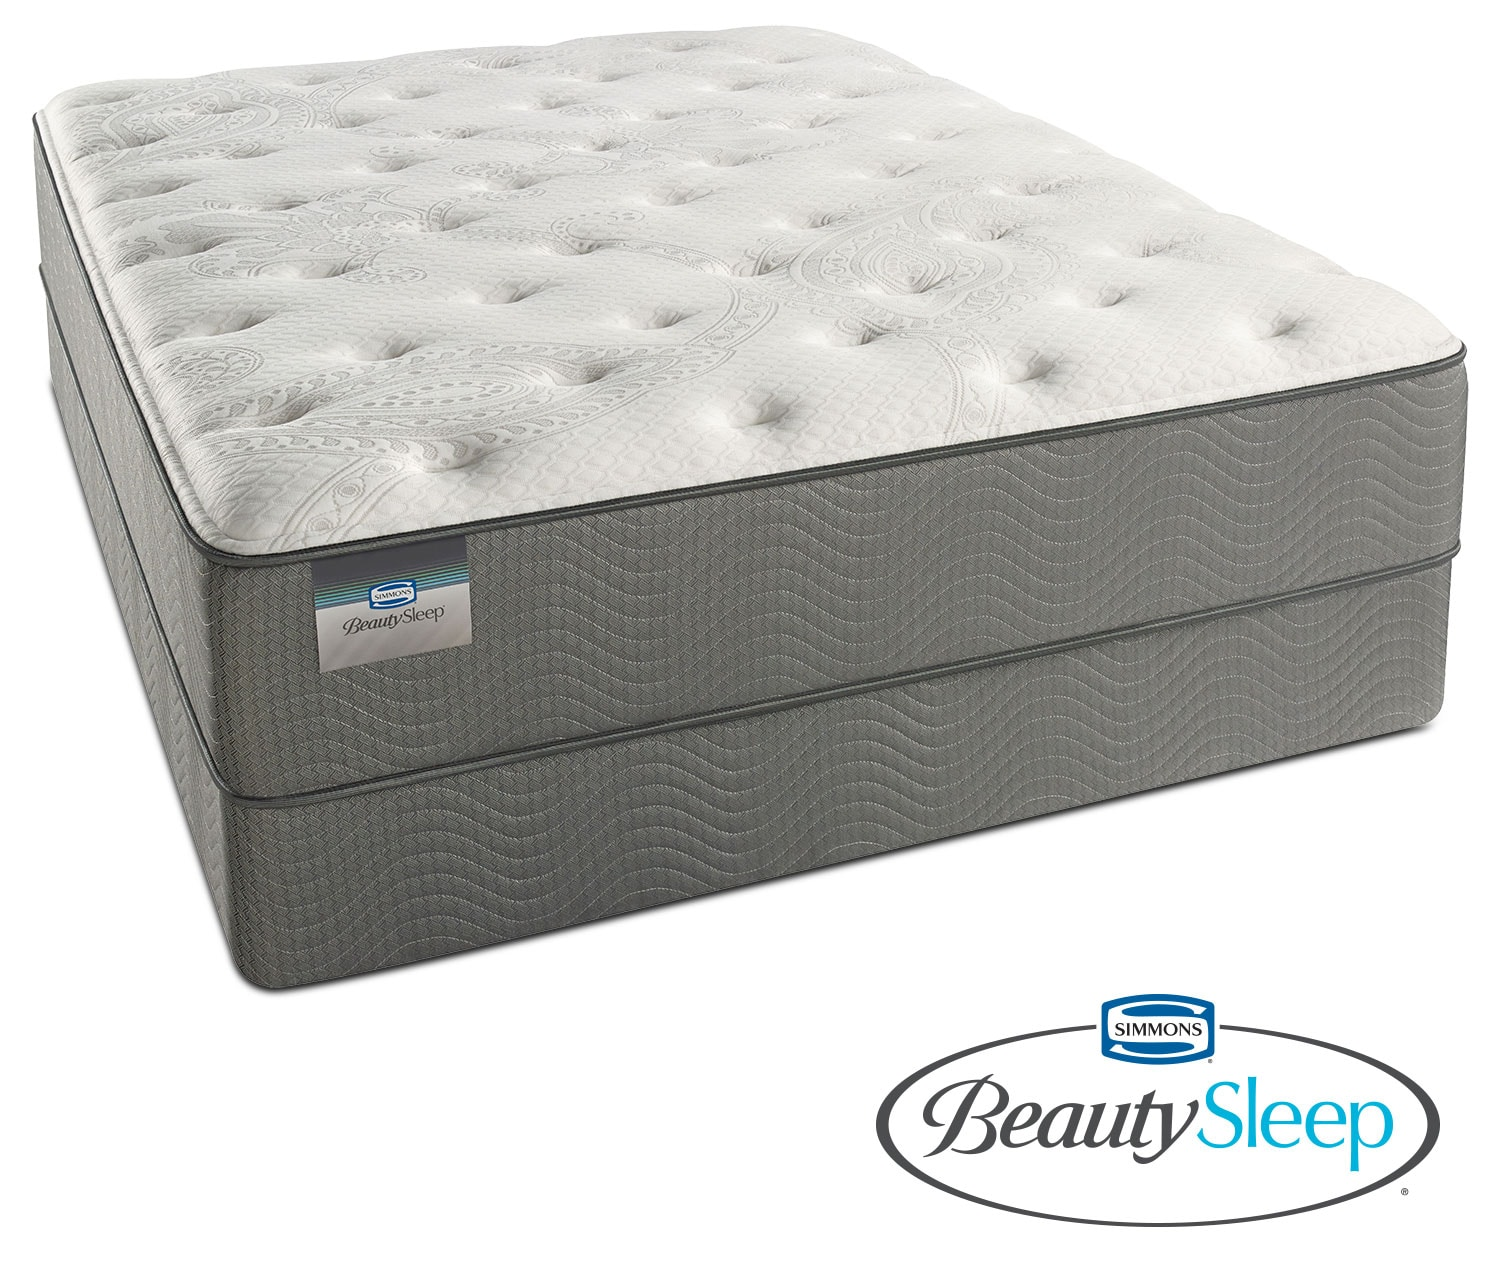 Stags Leap Luxury Firm Twin Mattress and Low Profile Foundation